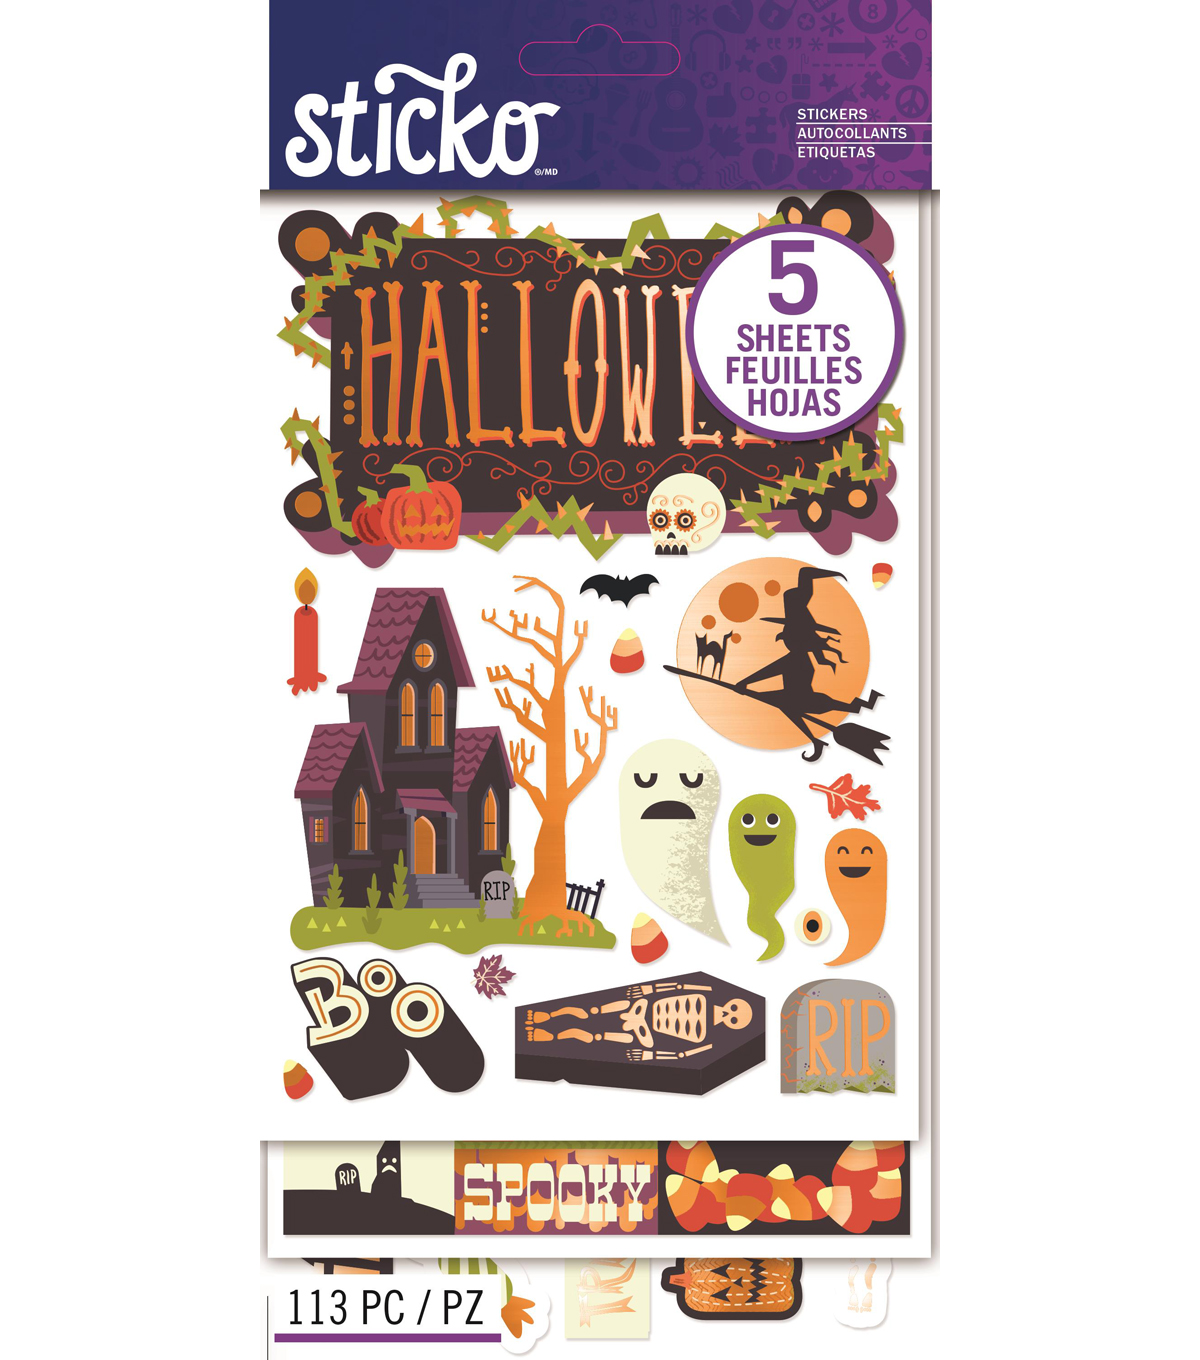 Sticko 113 Pack Flip Stickers-Halloween